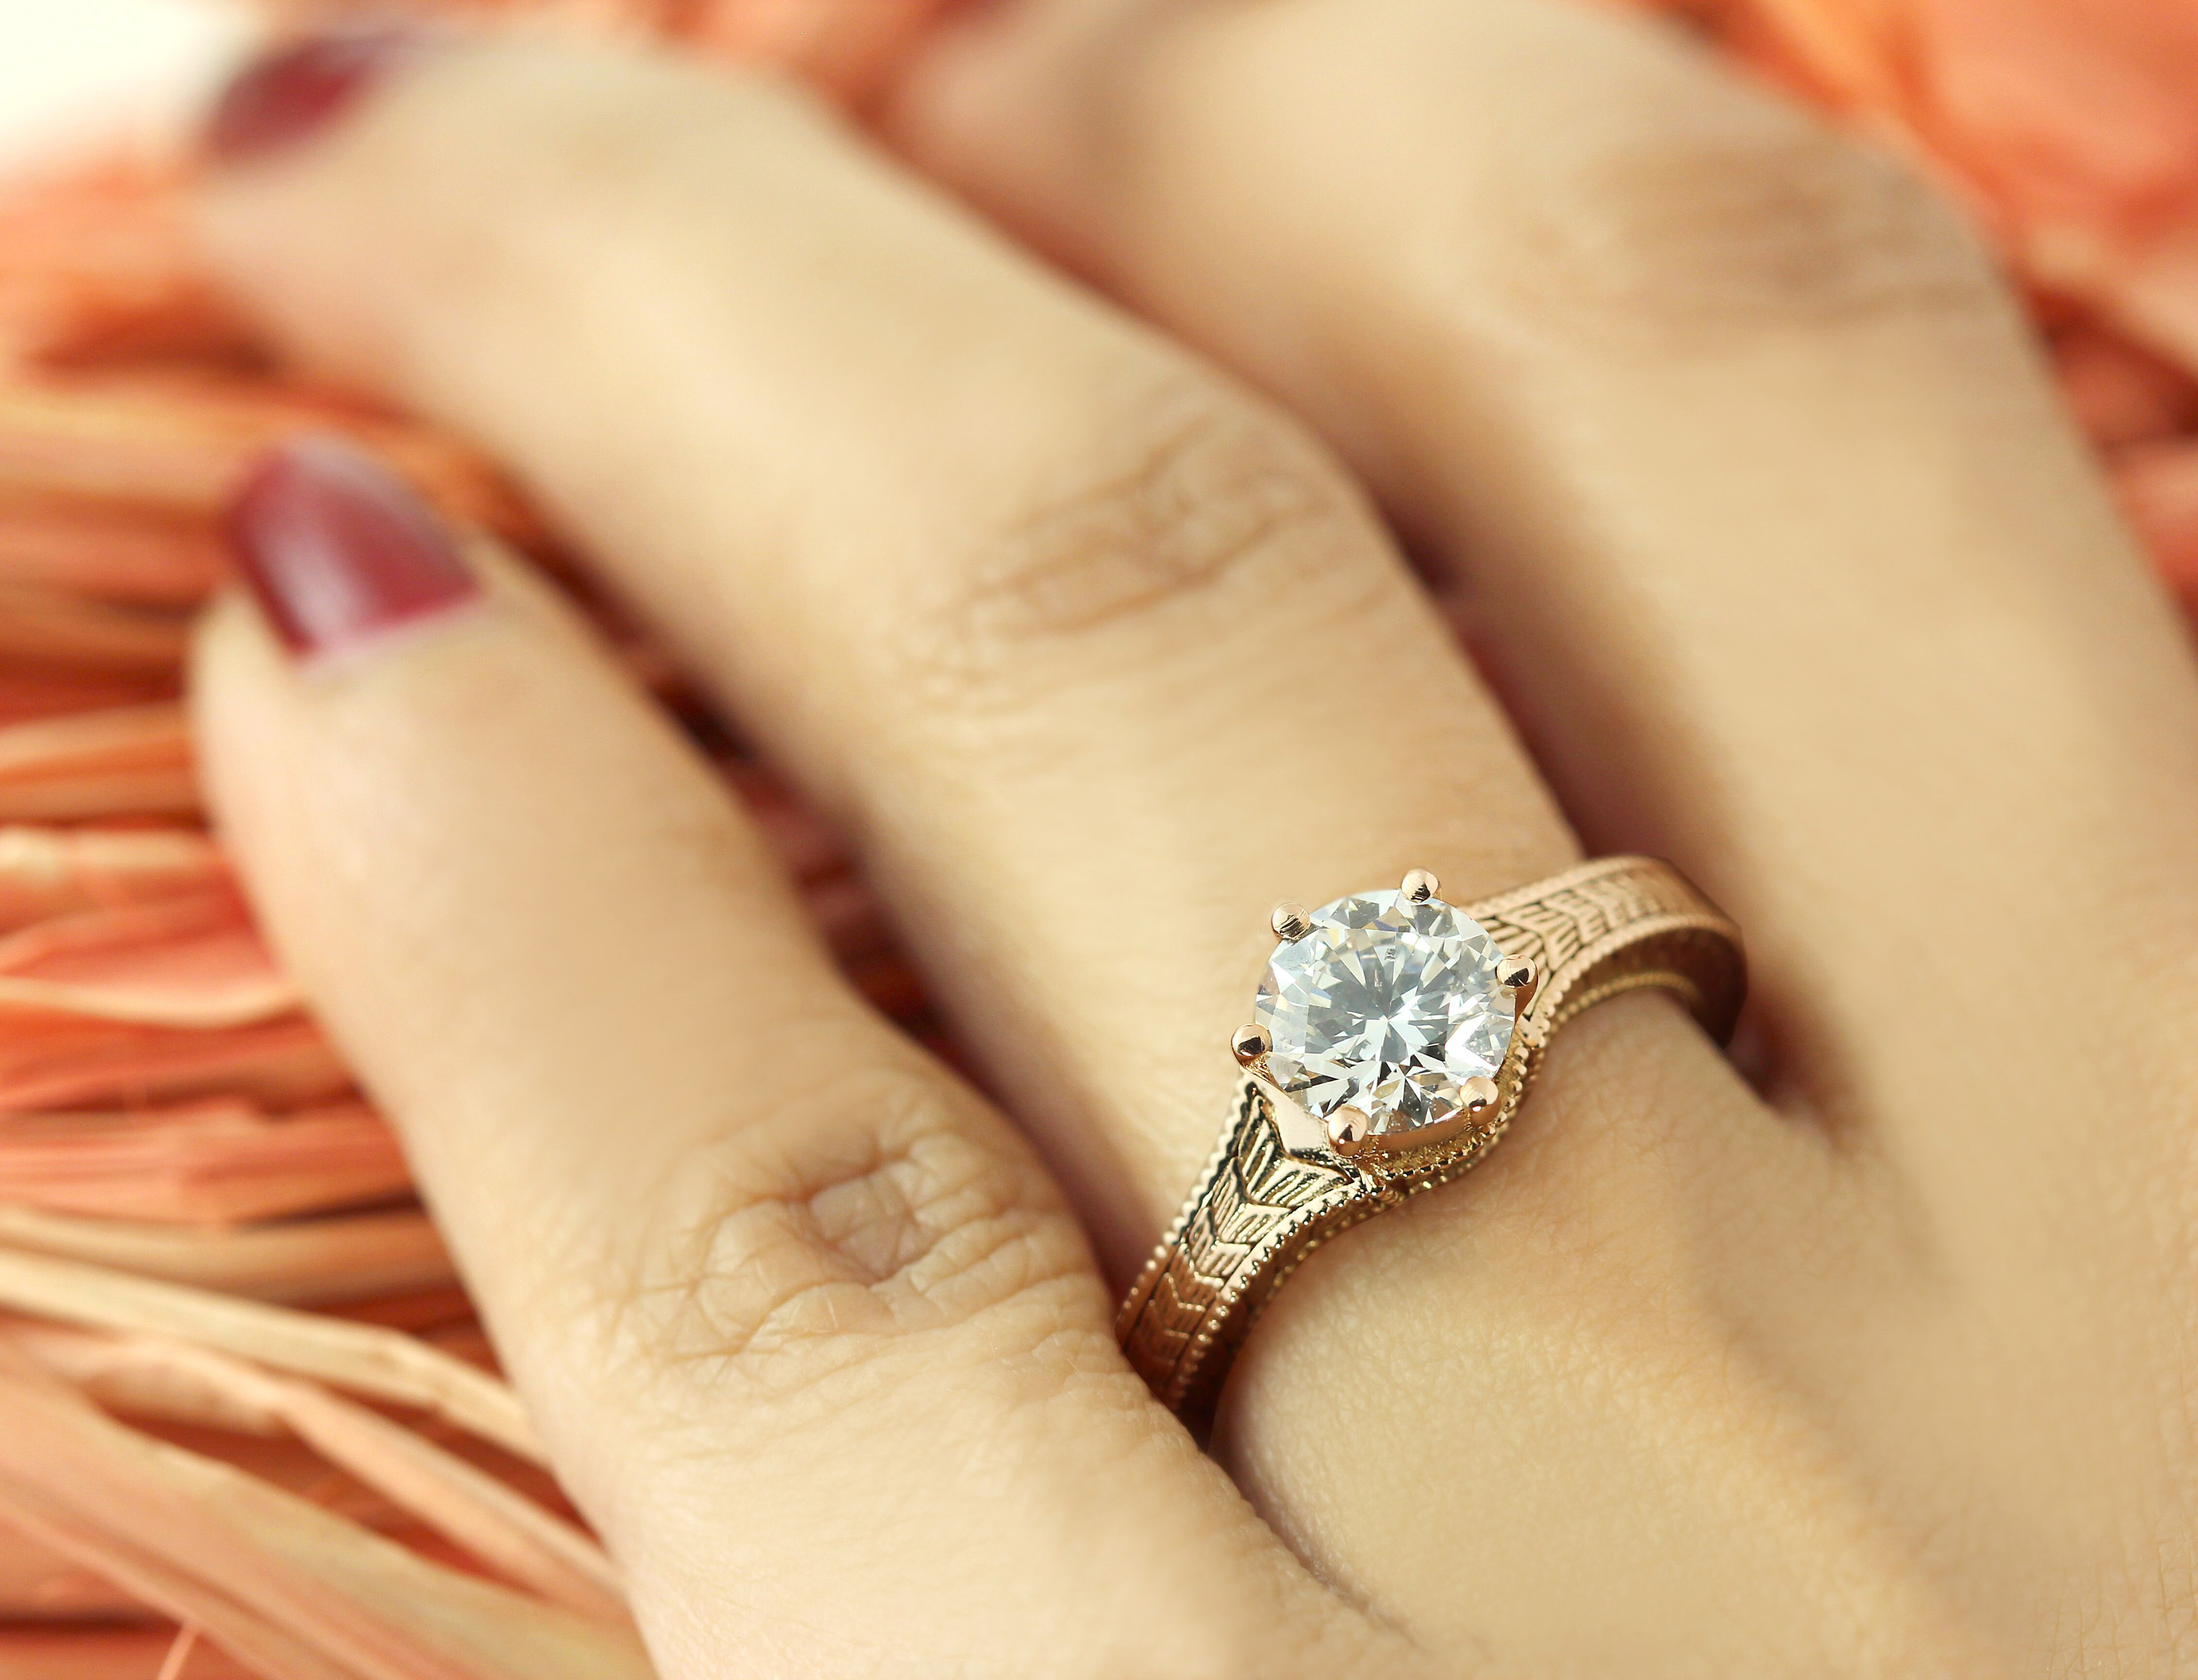 Engagement Ring Finger: The Meaning Behind